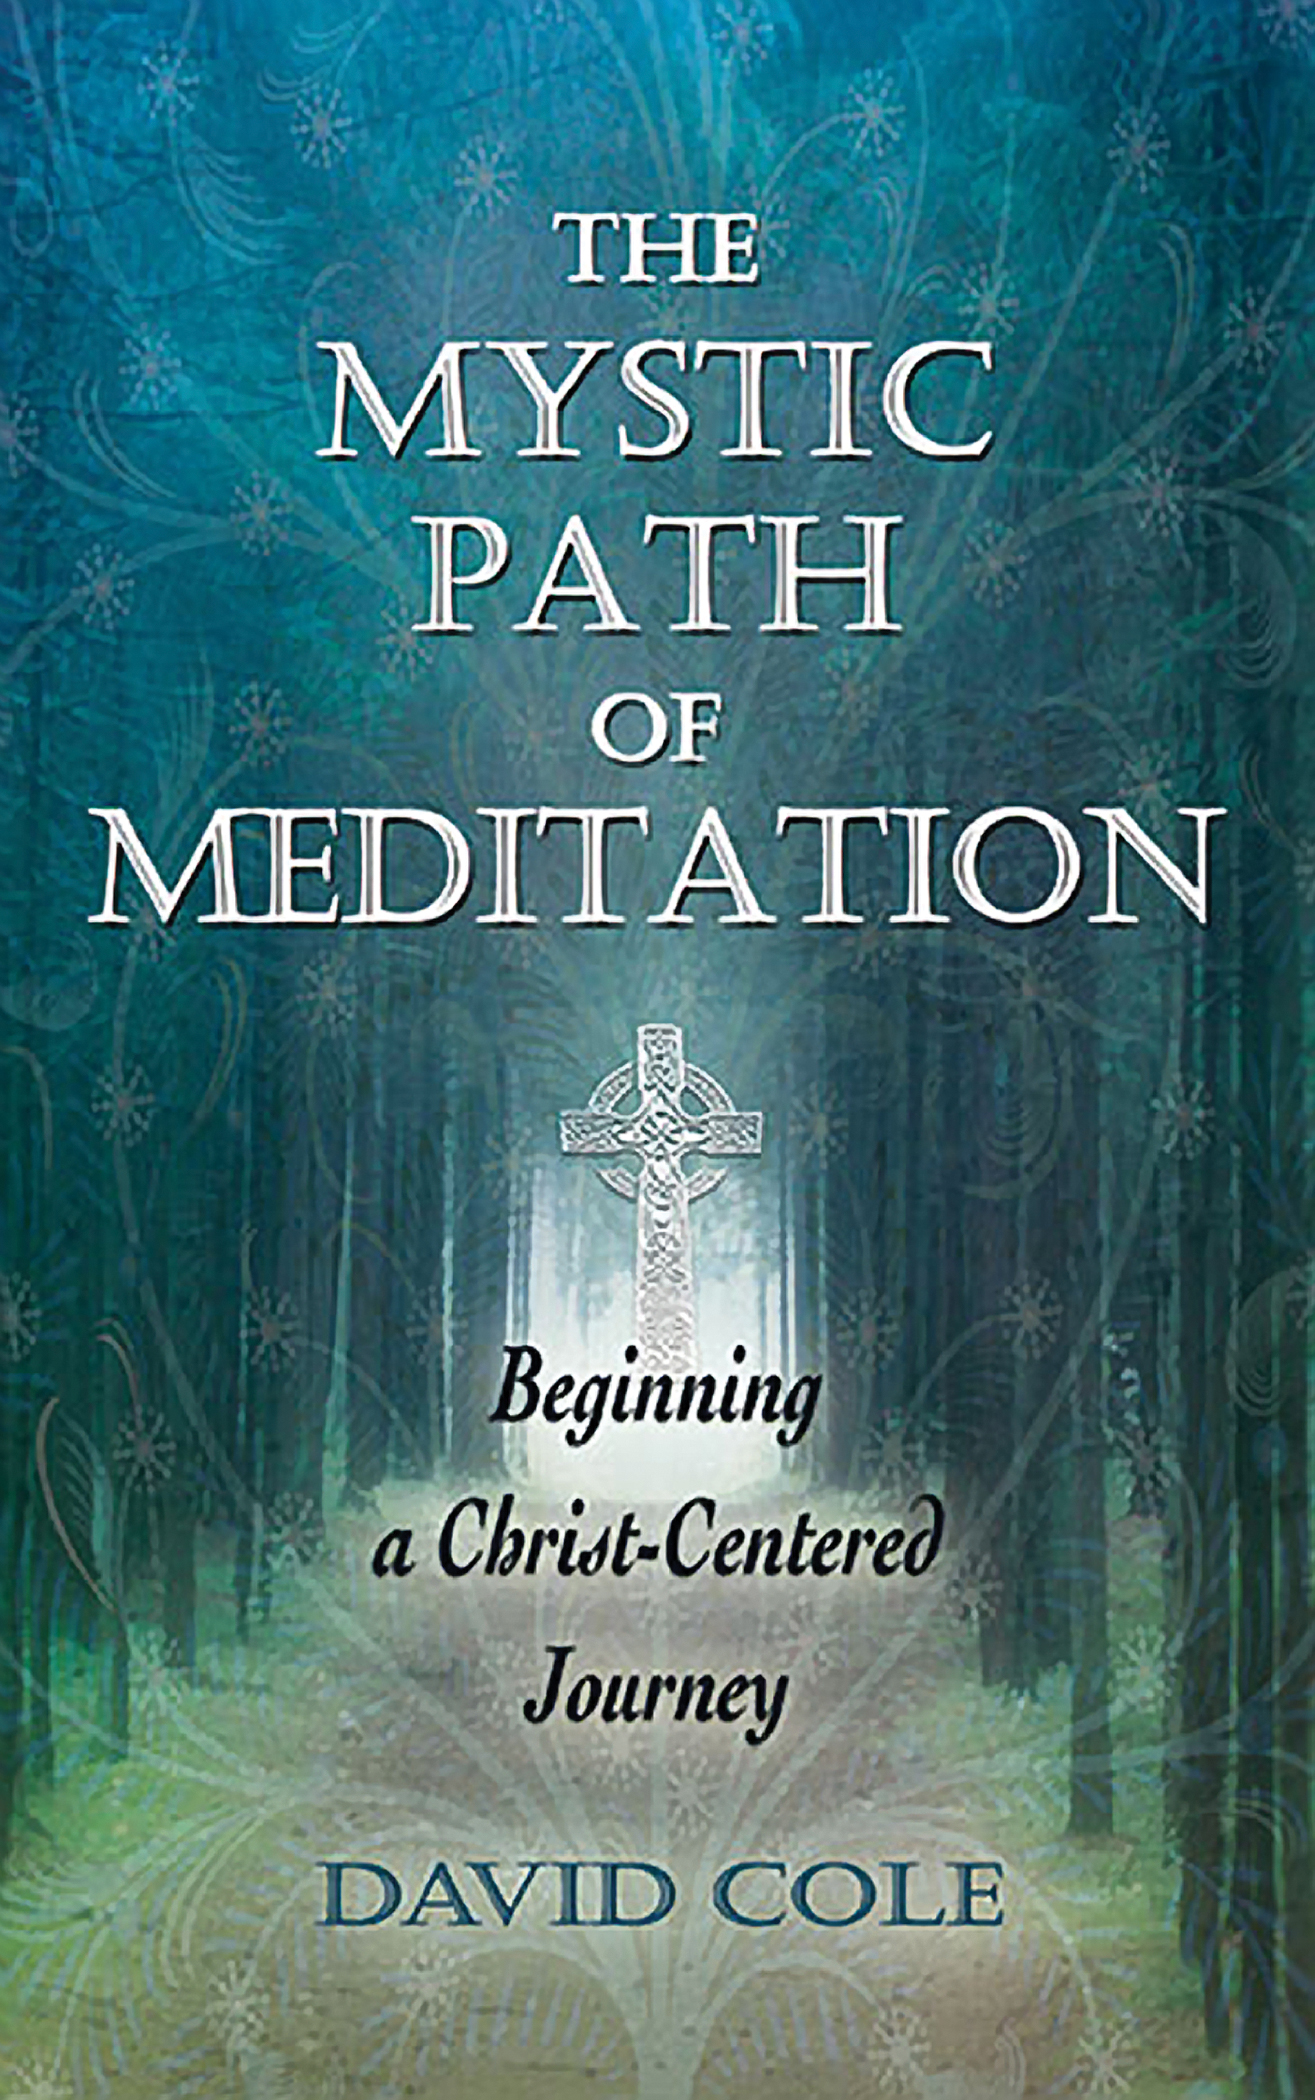 David Cole is the author of The Mystic Path of Meditation: Beginning a Christ-Centered Journey, available on Amazon.com.